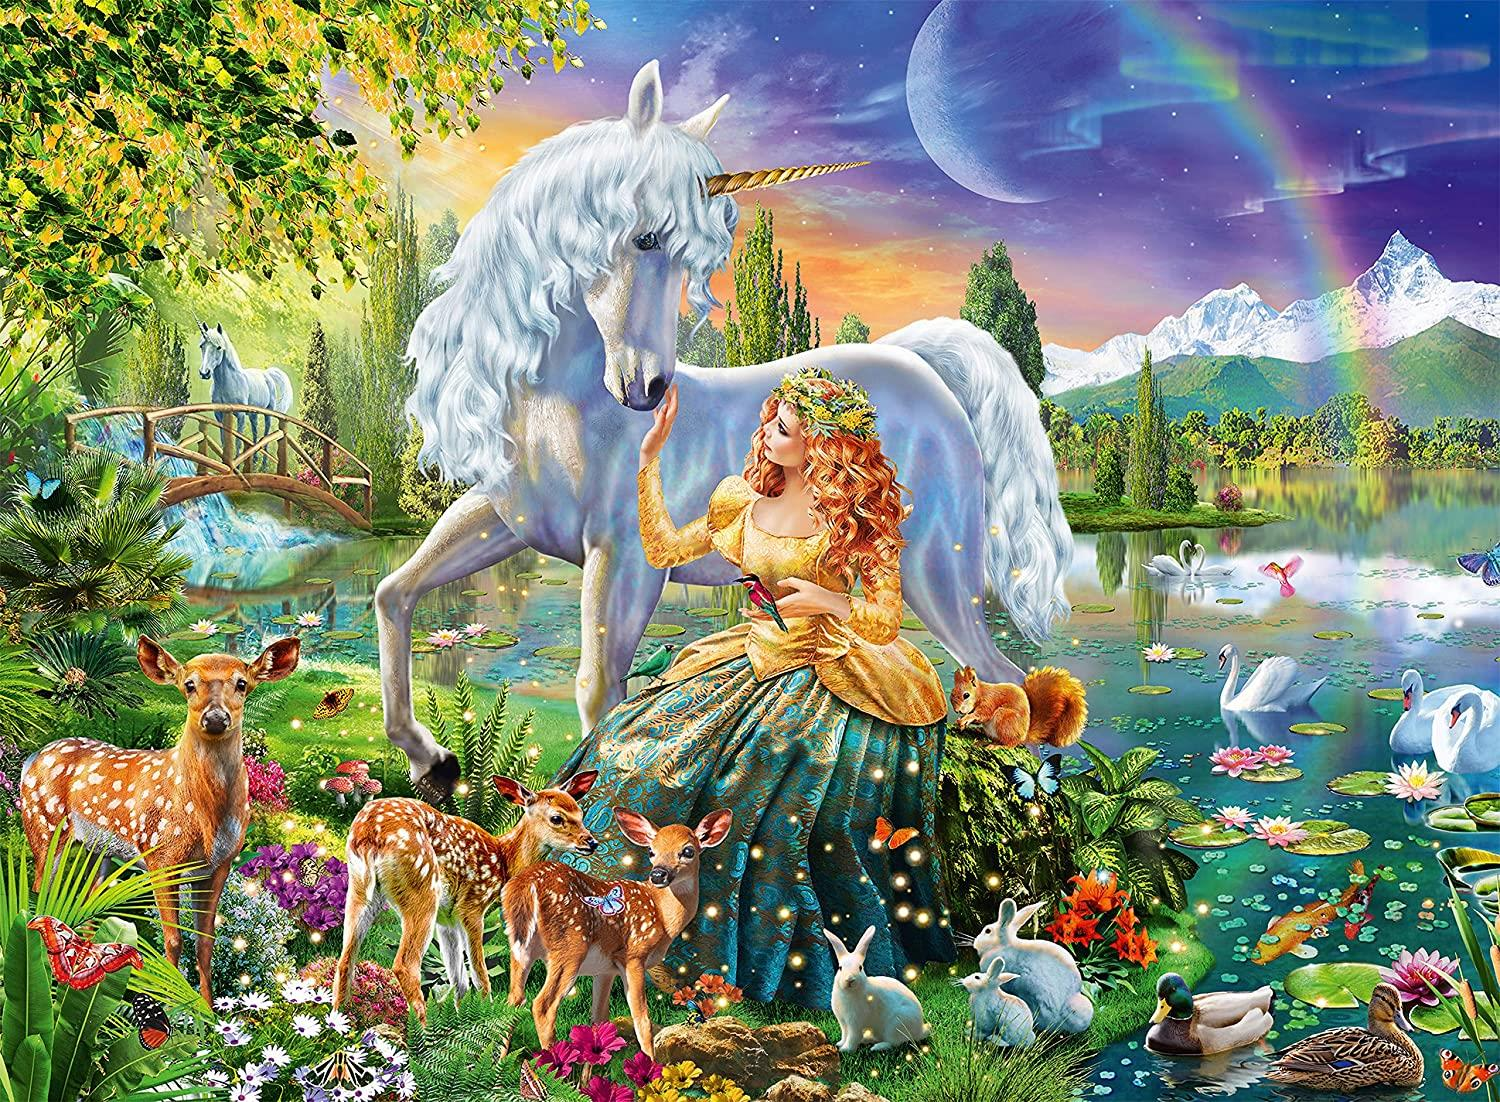 Ravensburger Magical Encounter Jigsaw Puzzle (200 Pieces)